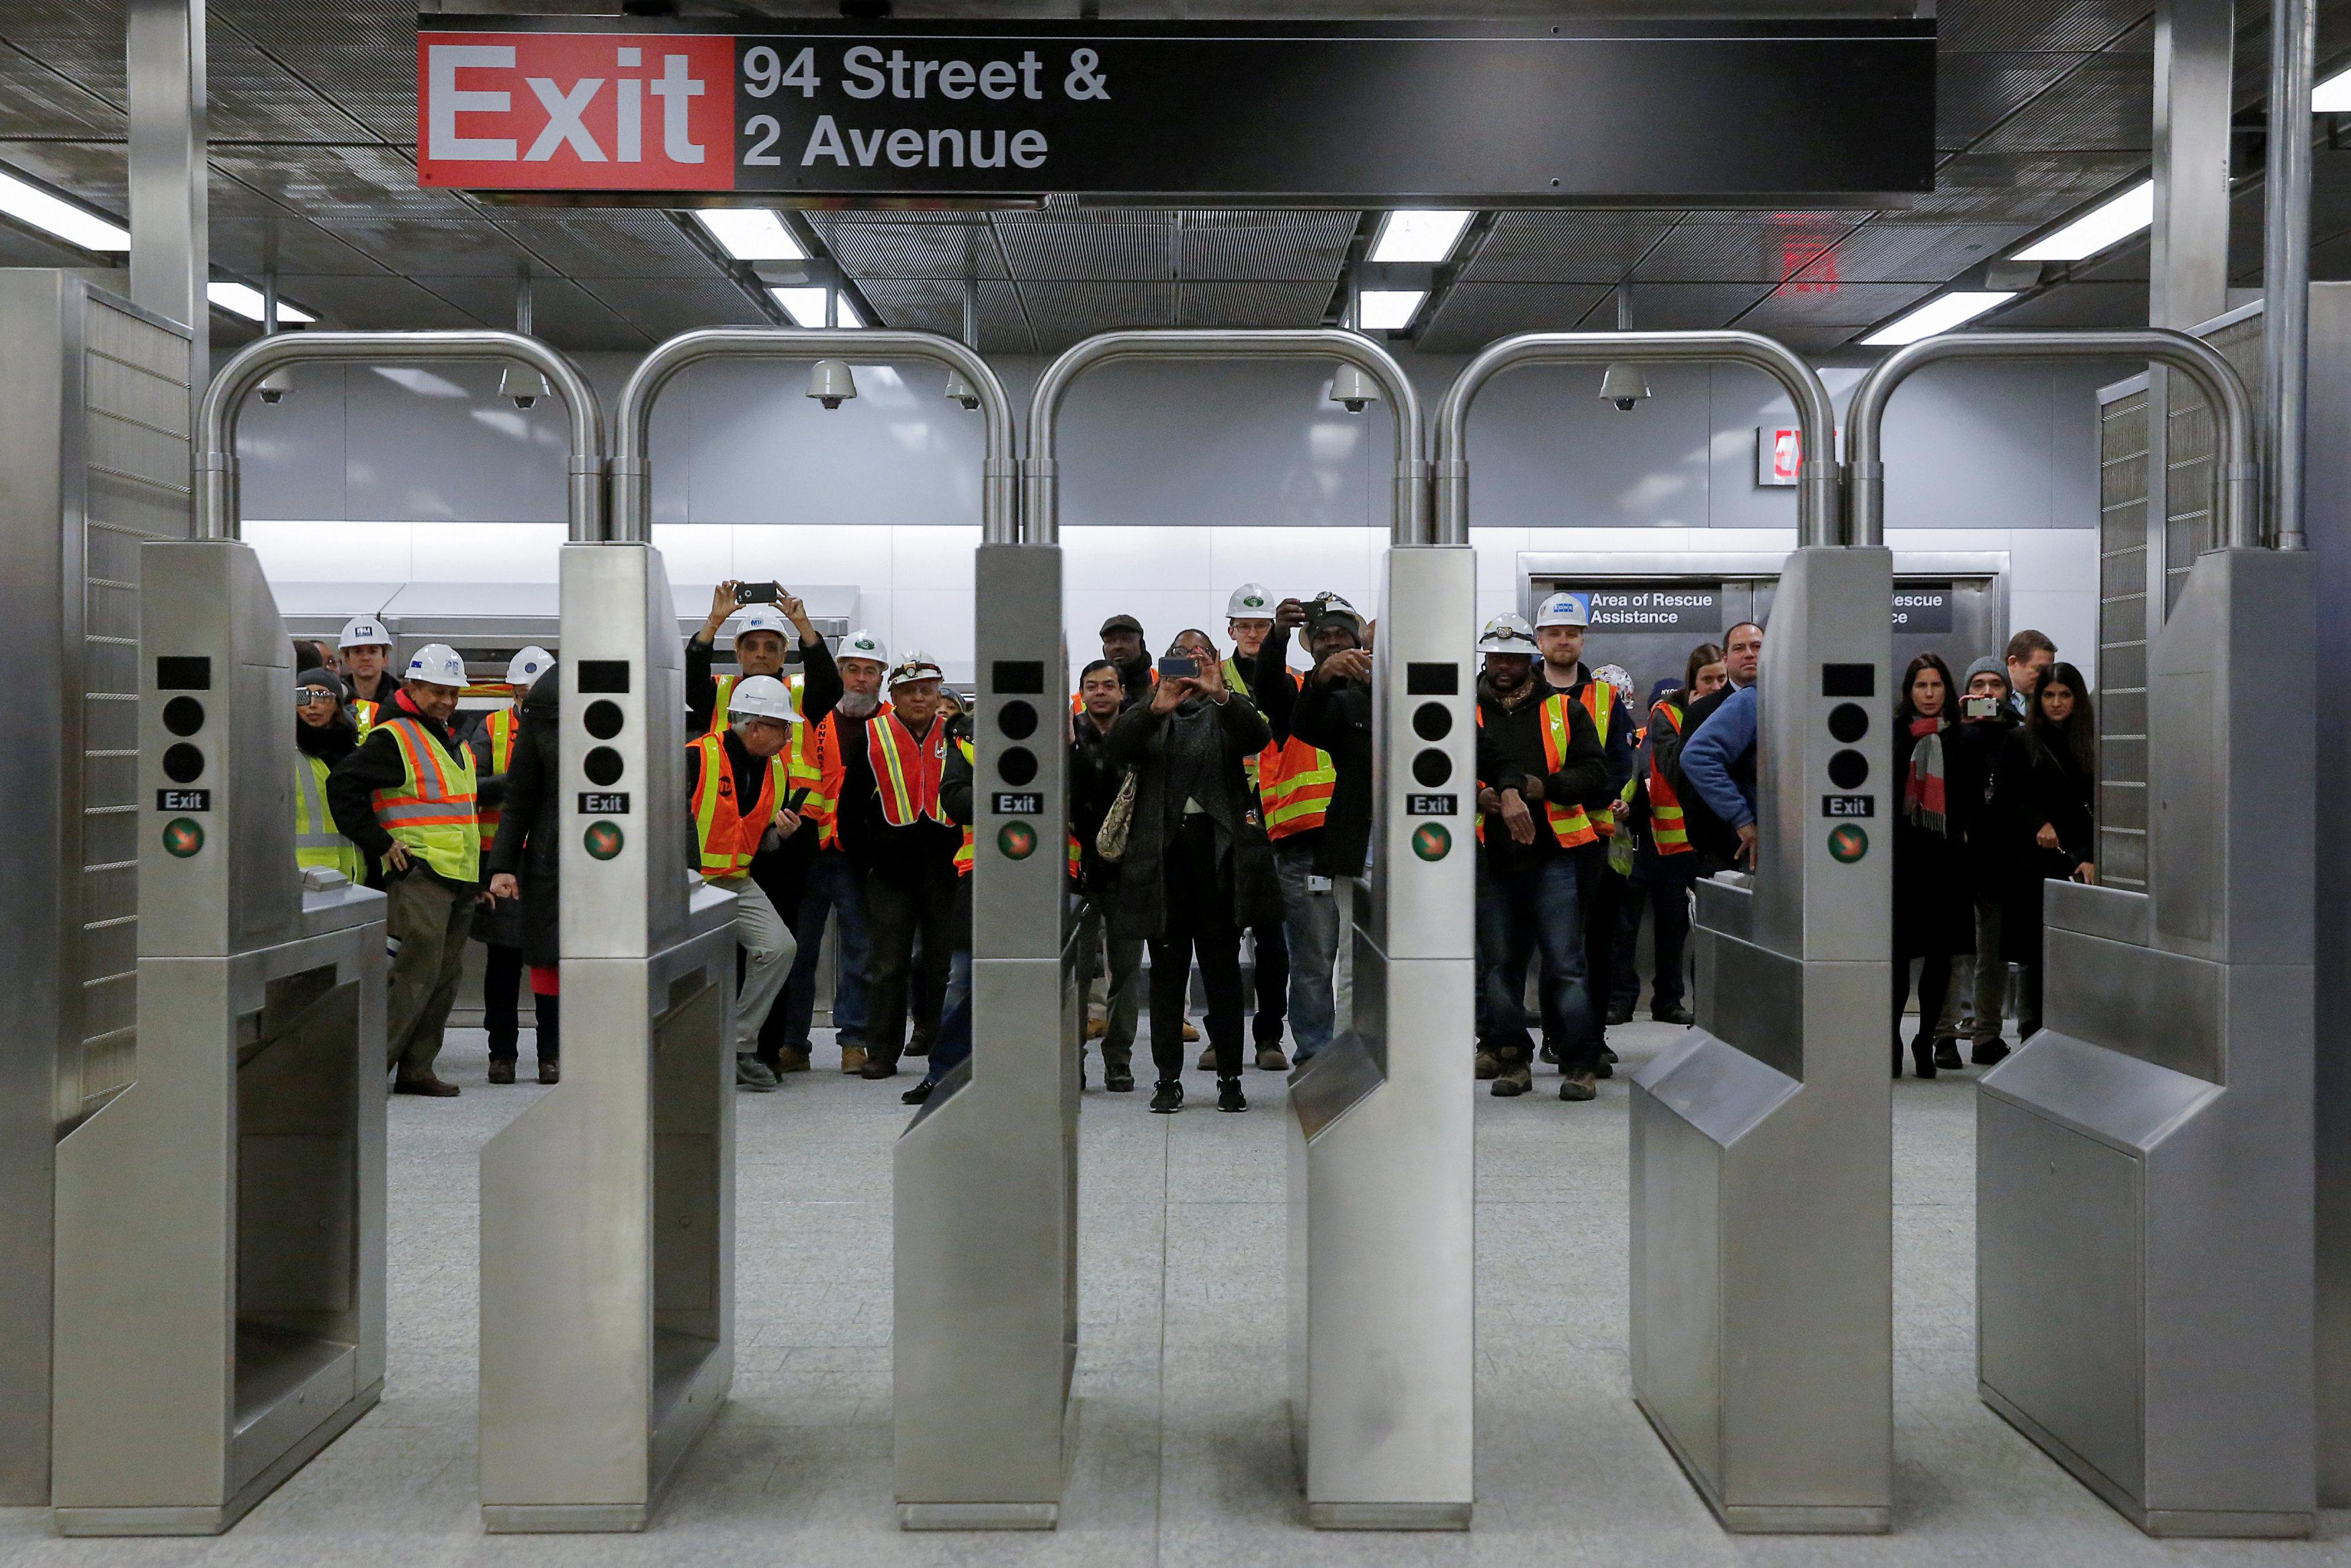 Workers take photos through the turnstyles at the 96th Street Station during a preview event for the Second Avenue subway line in Manhattan, New York City, U.S., December 22, 2016. REUTERS/Andrew Kelly